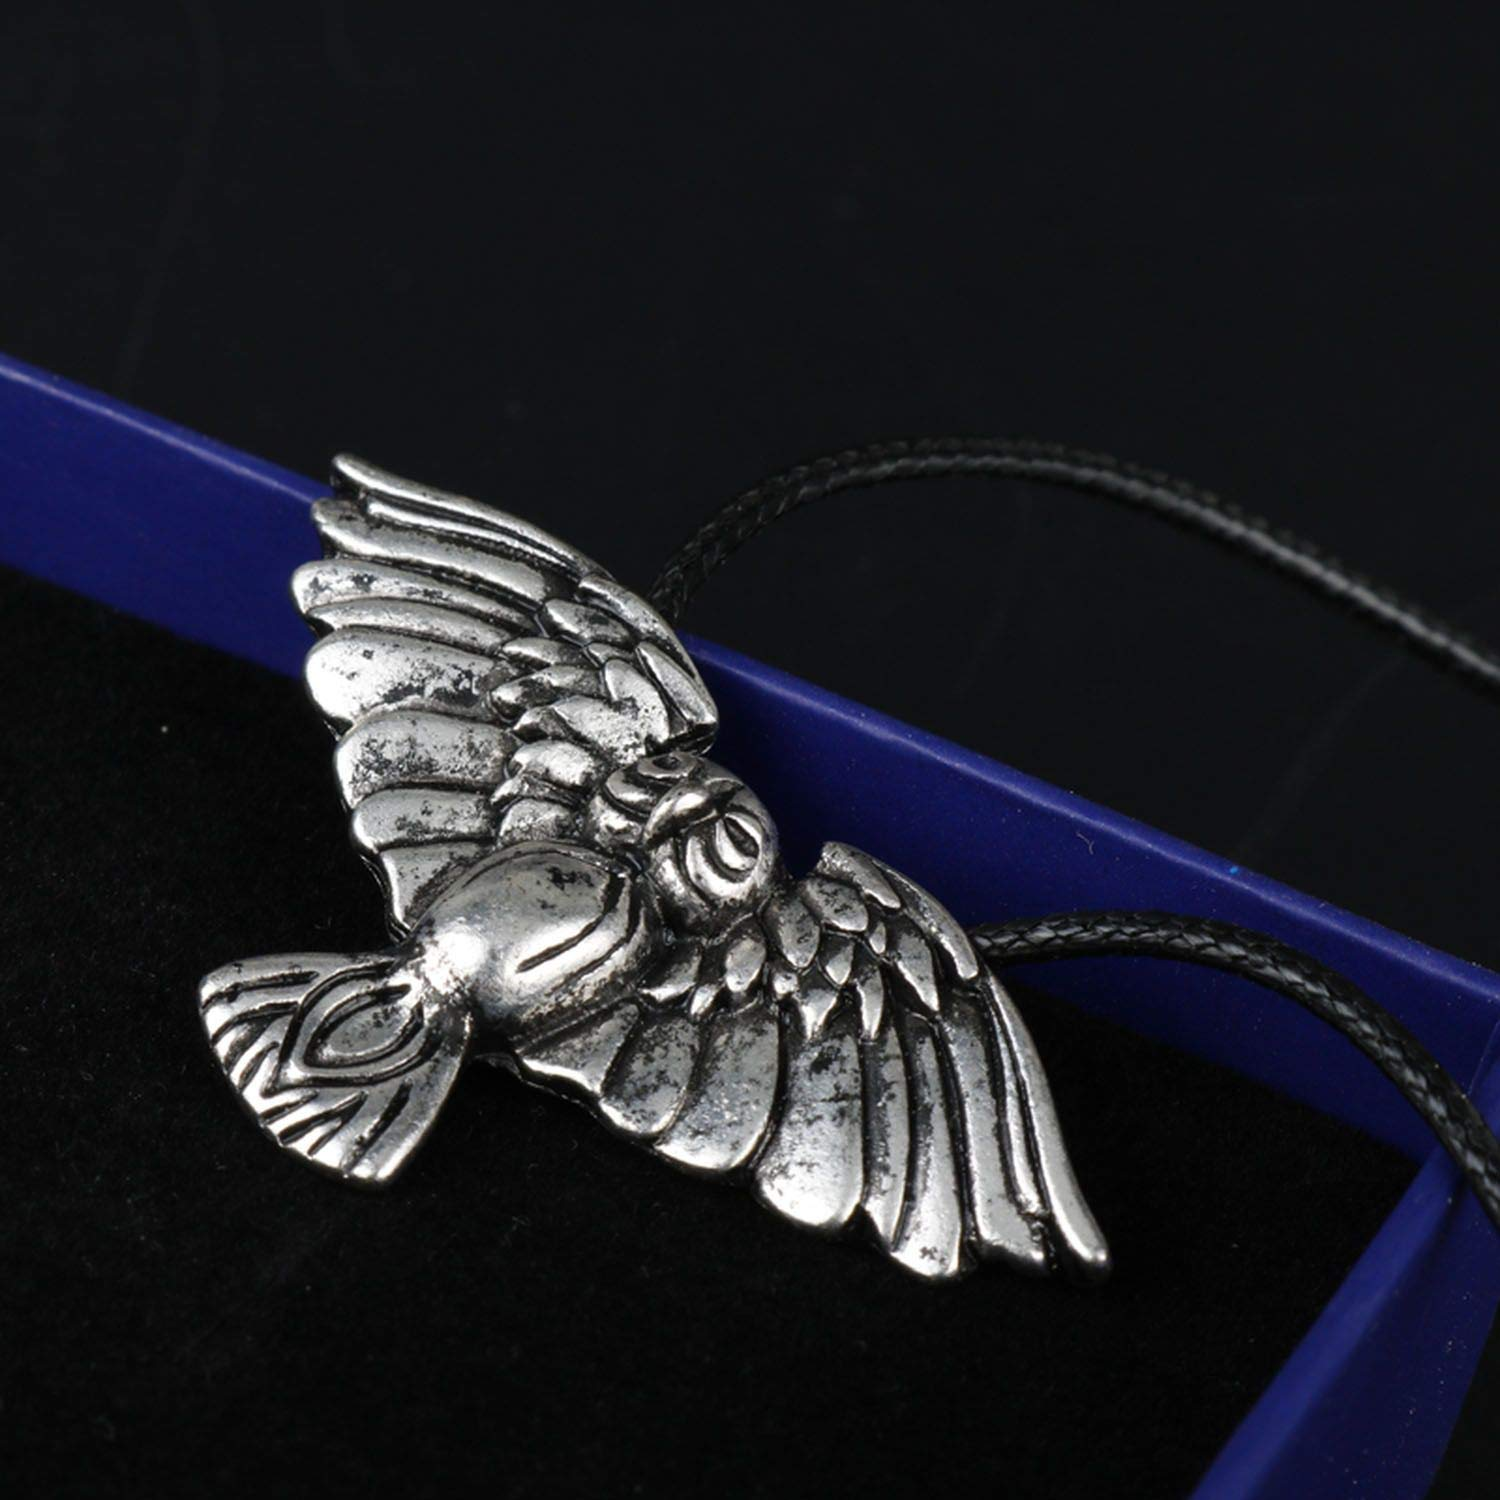 Handmade Norse Pendant Antique Silver Color Bird Animal Necklace Charm Amulet Necklace Jewelry